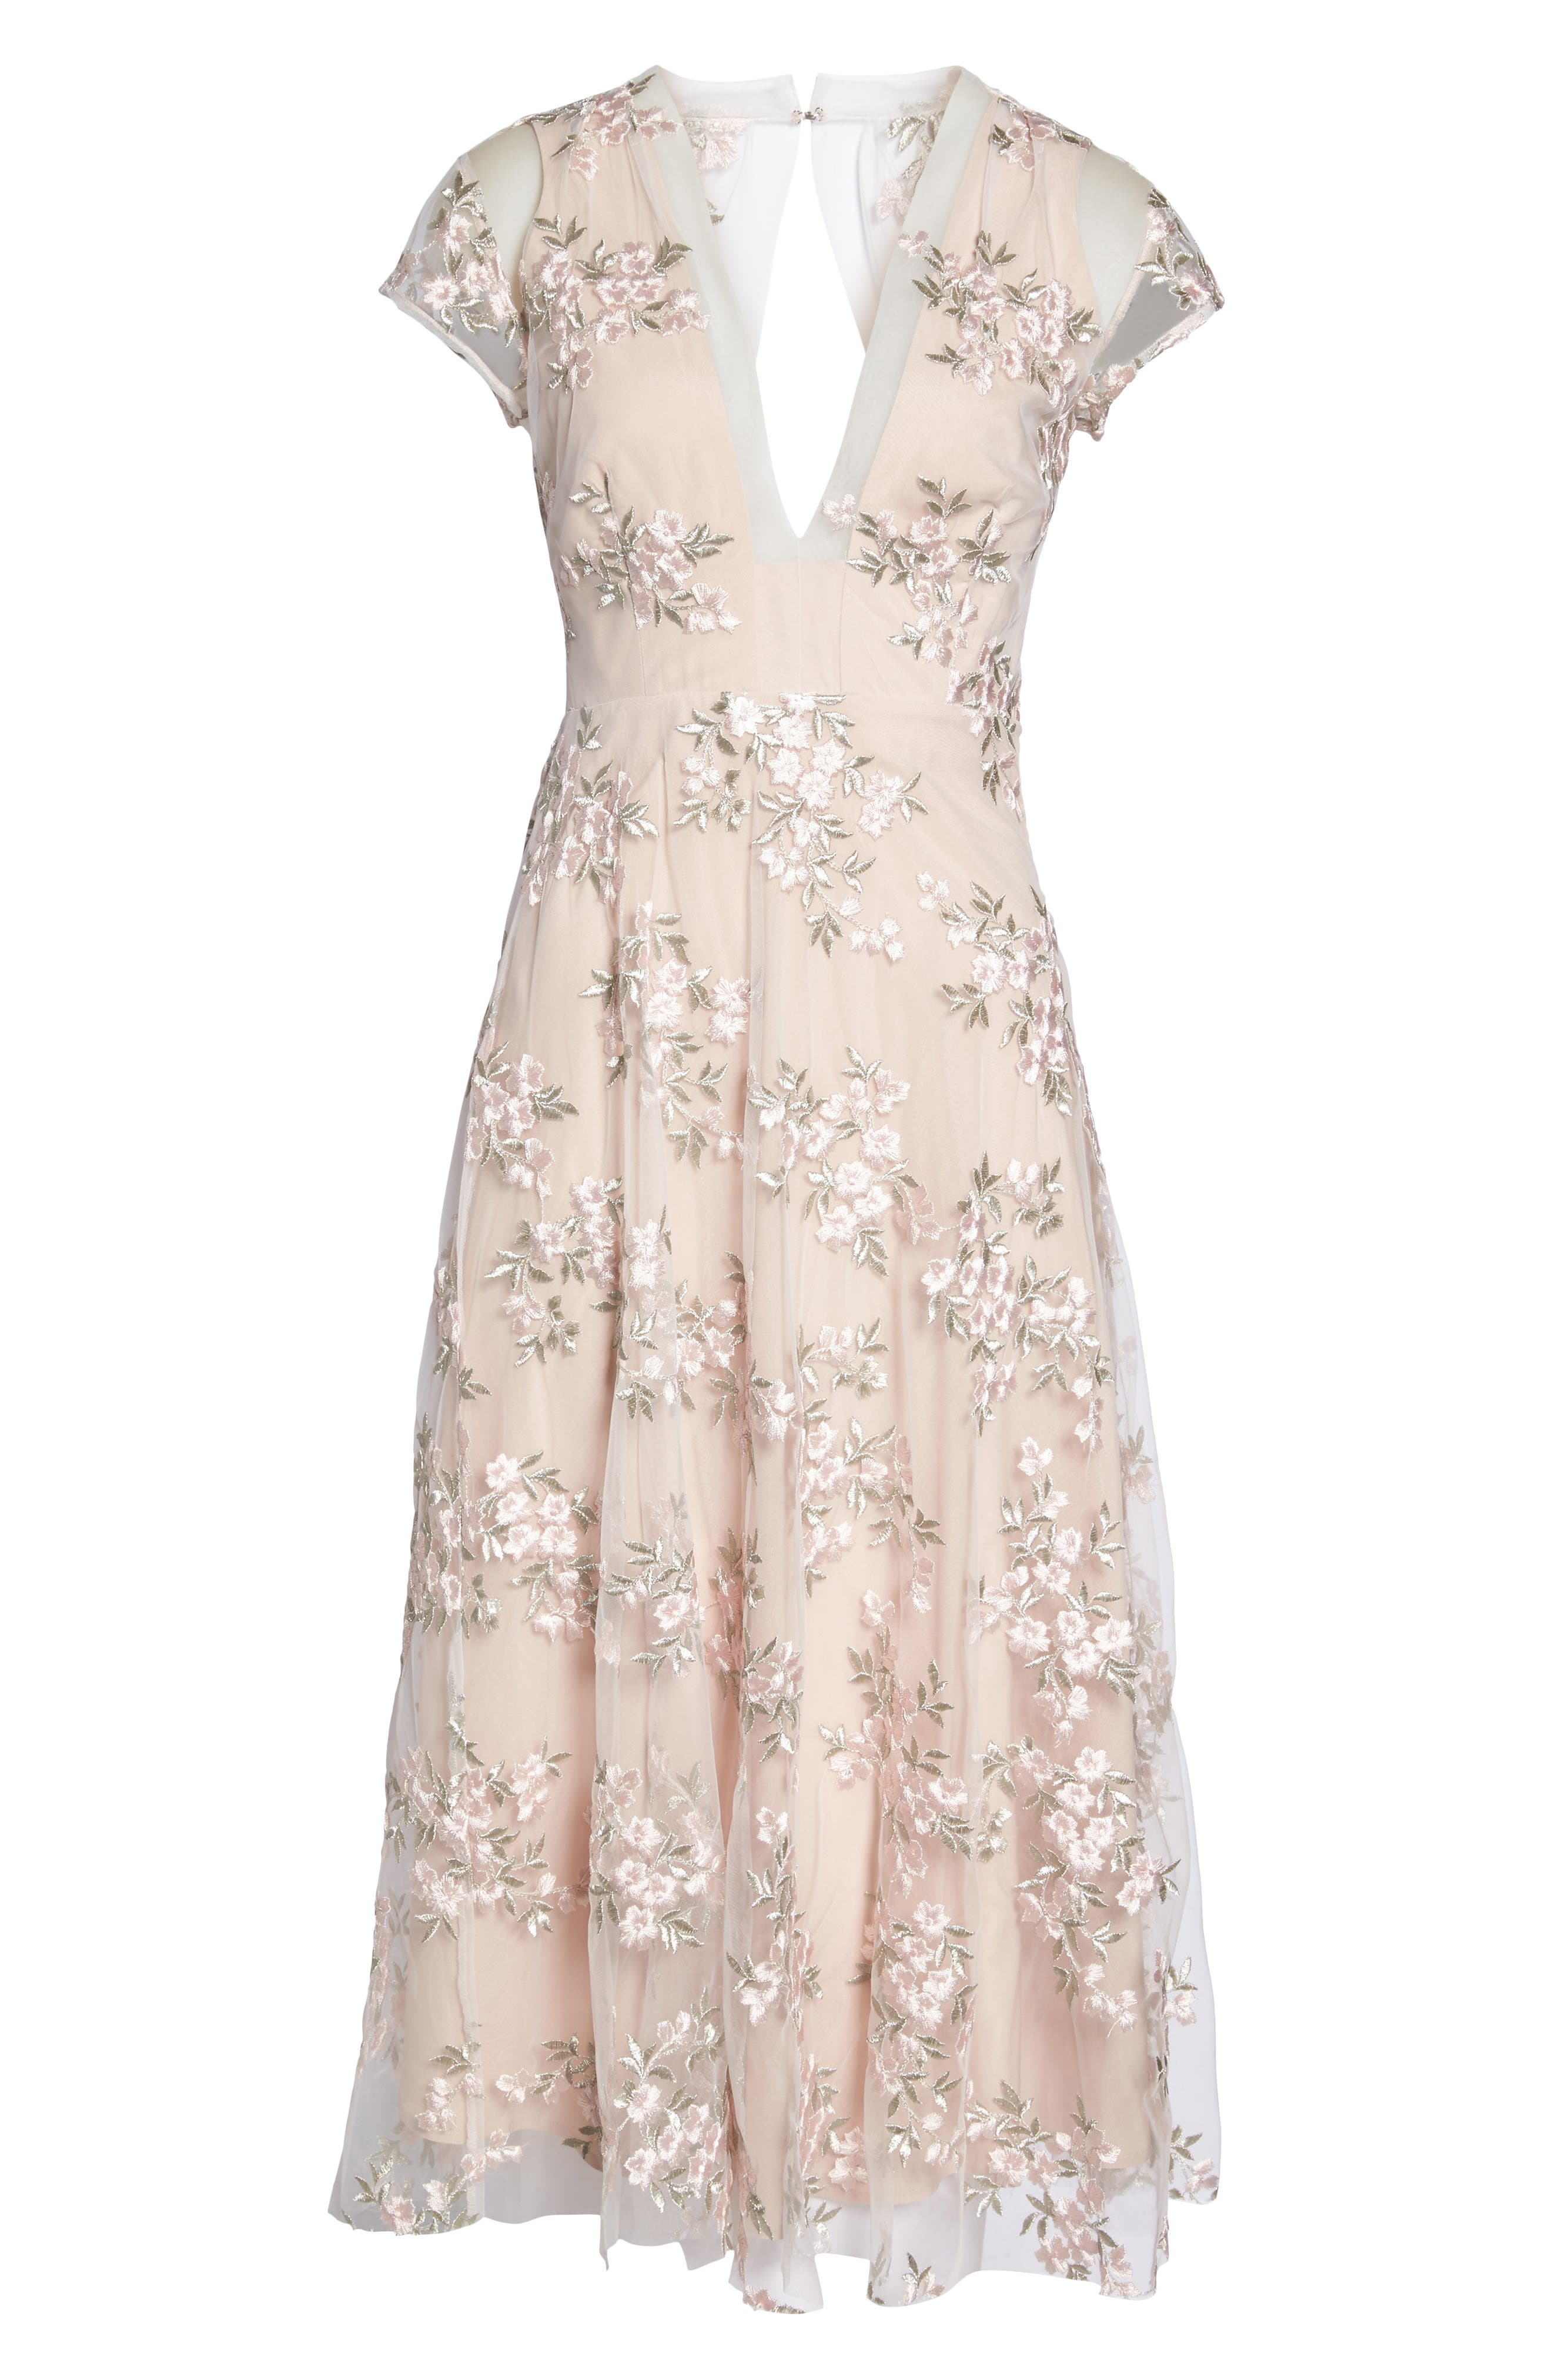 Rosalie Embroidered Midi Dress,                             Alternate thumbnail 6, color,                             Ivory/ Pink